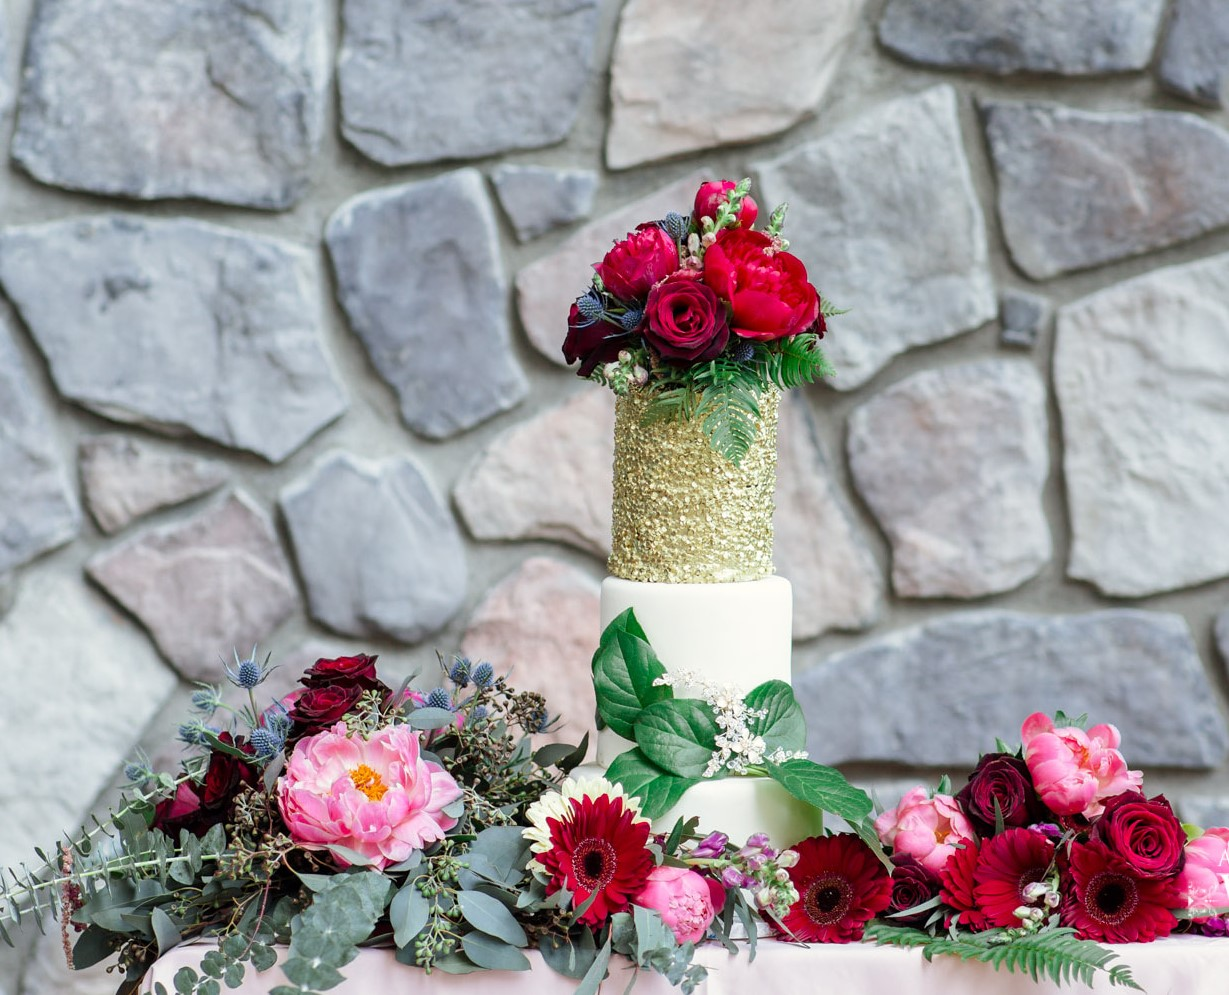 Wedding Cake surrounded by pink and red roses Thrifty Foods